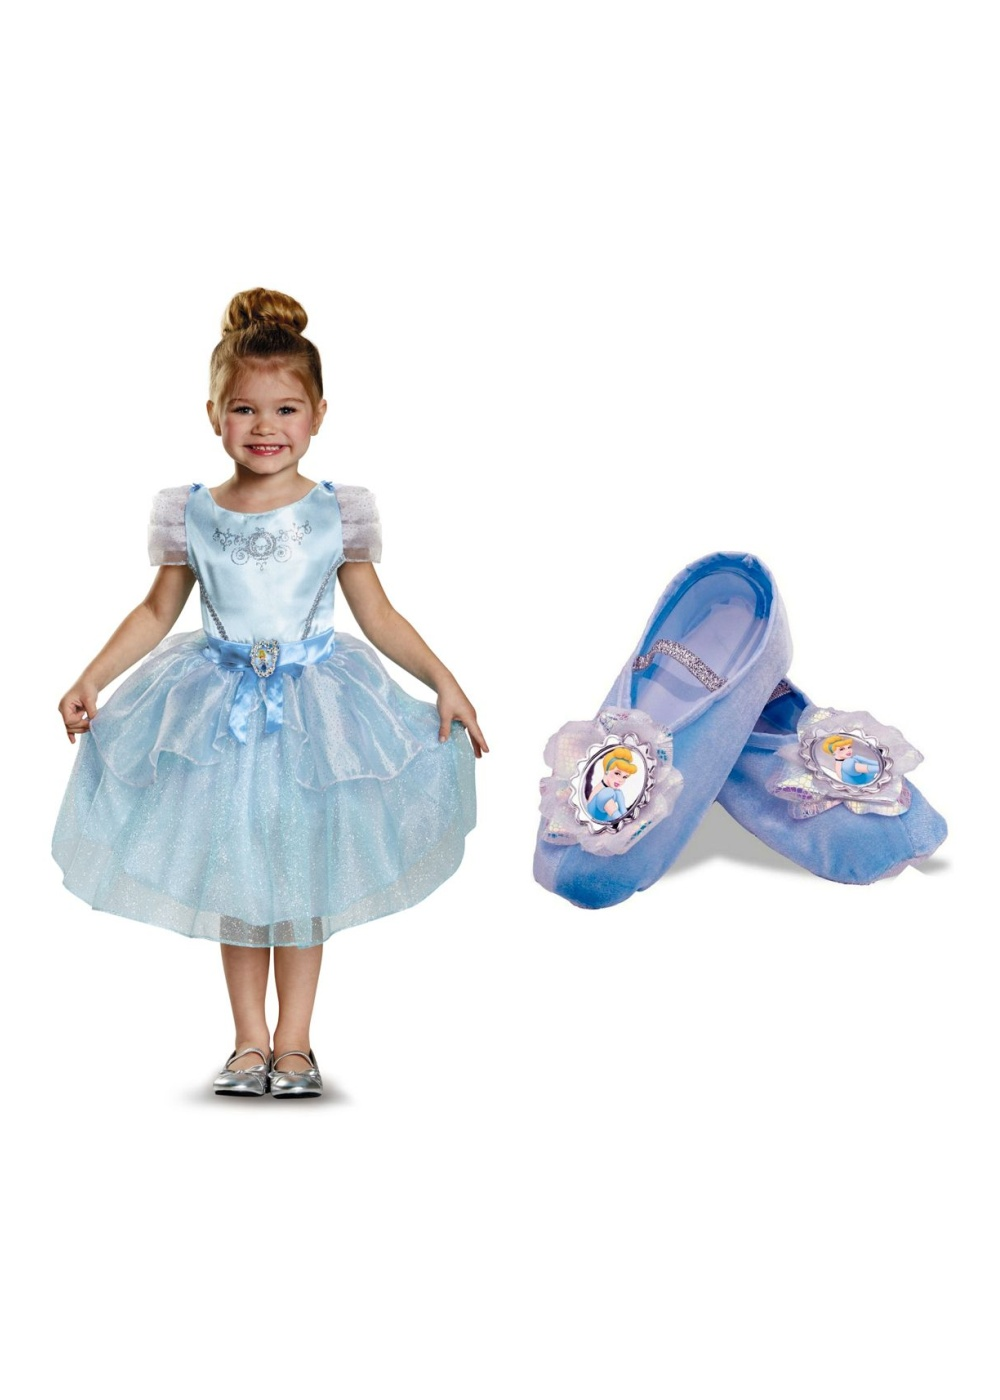 Cinderella Girls Costume Dress and Ballet Slippers  Princess Costumes